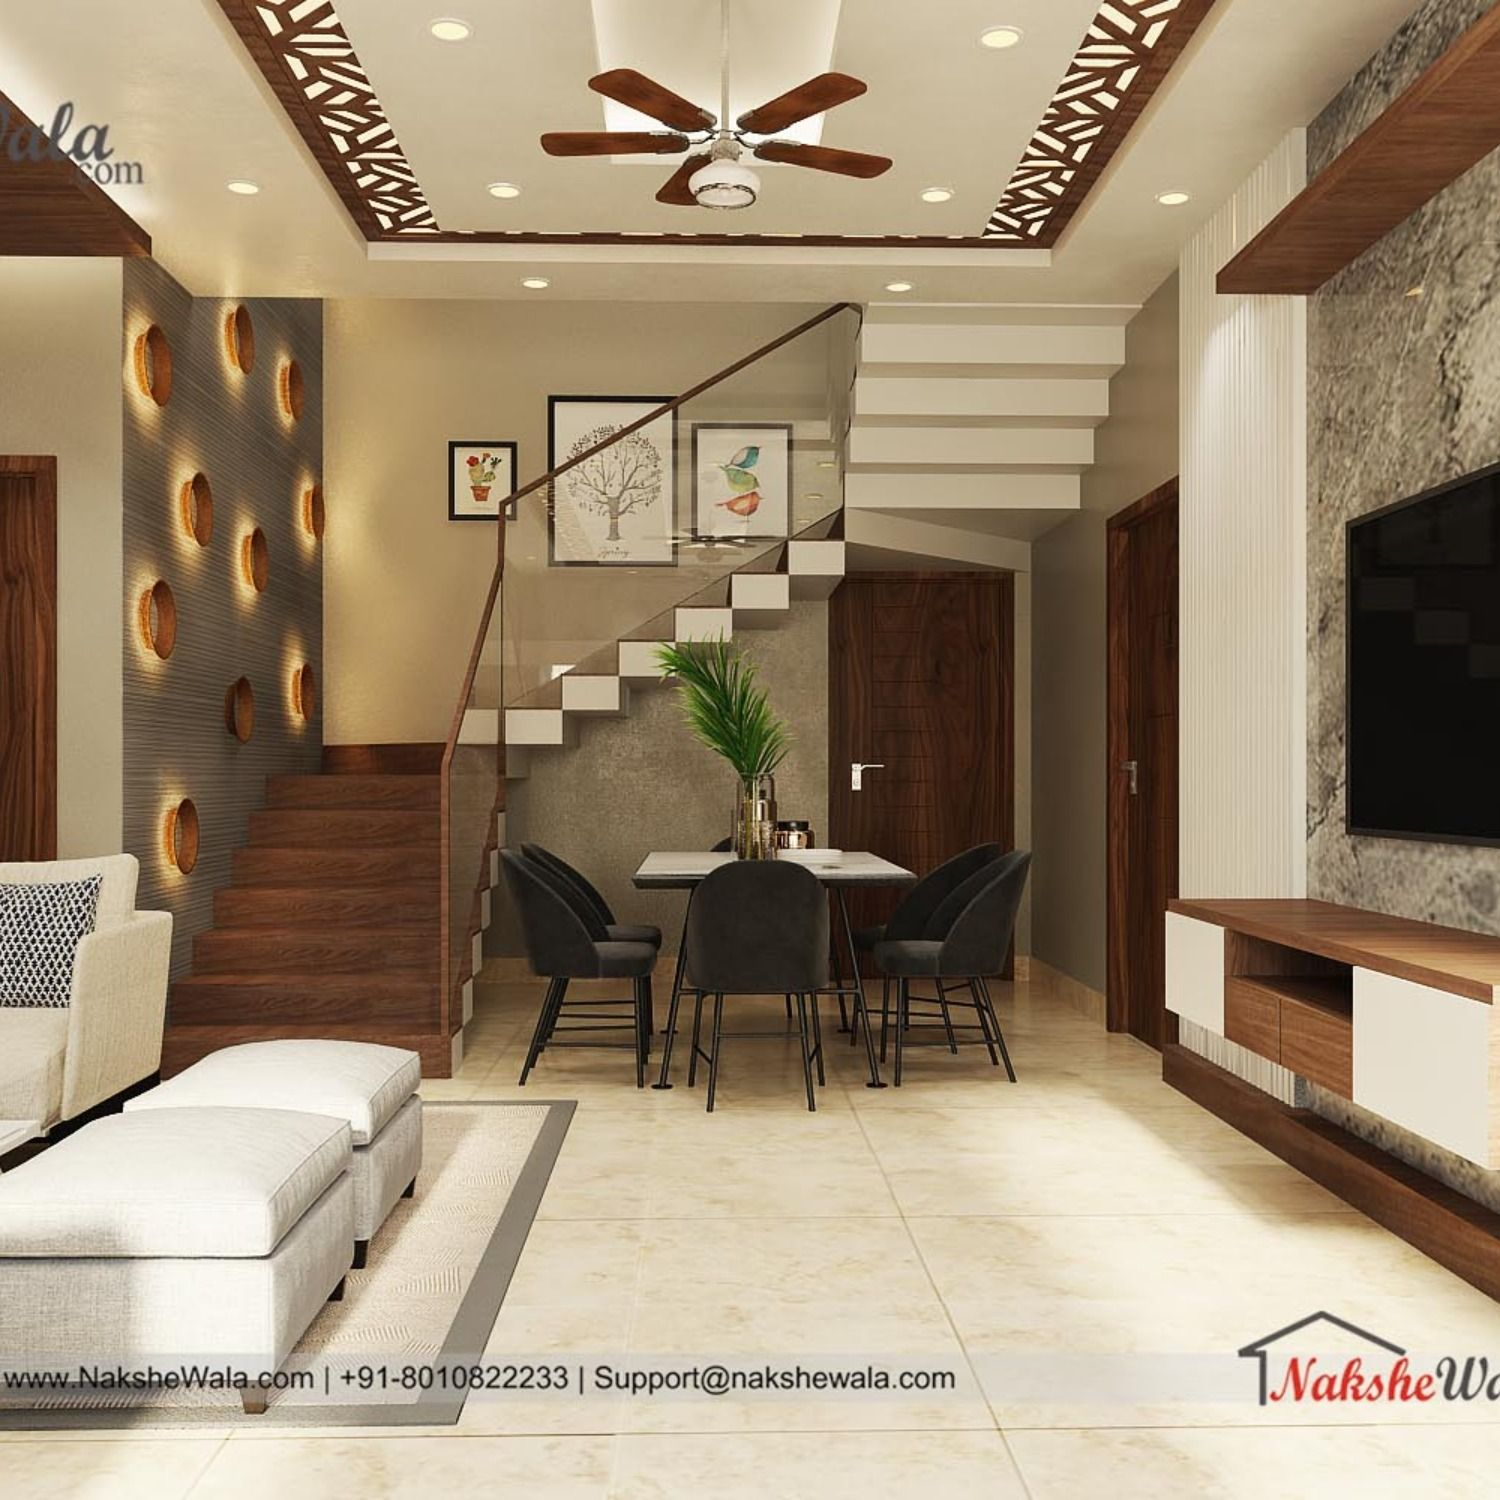 Modern Living Room Interior Designed By Nakshewala Com In 2020   False Ceiling Designs For Staircase   Simple   Interesting   Square   Entrance Lobby   Decor